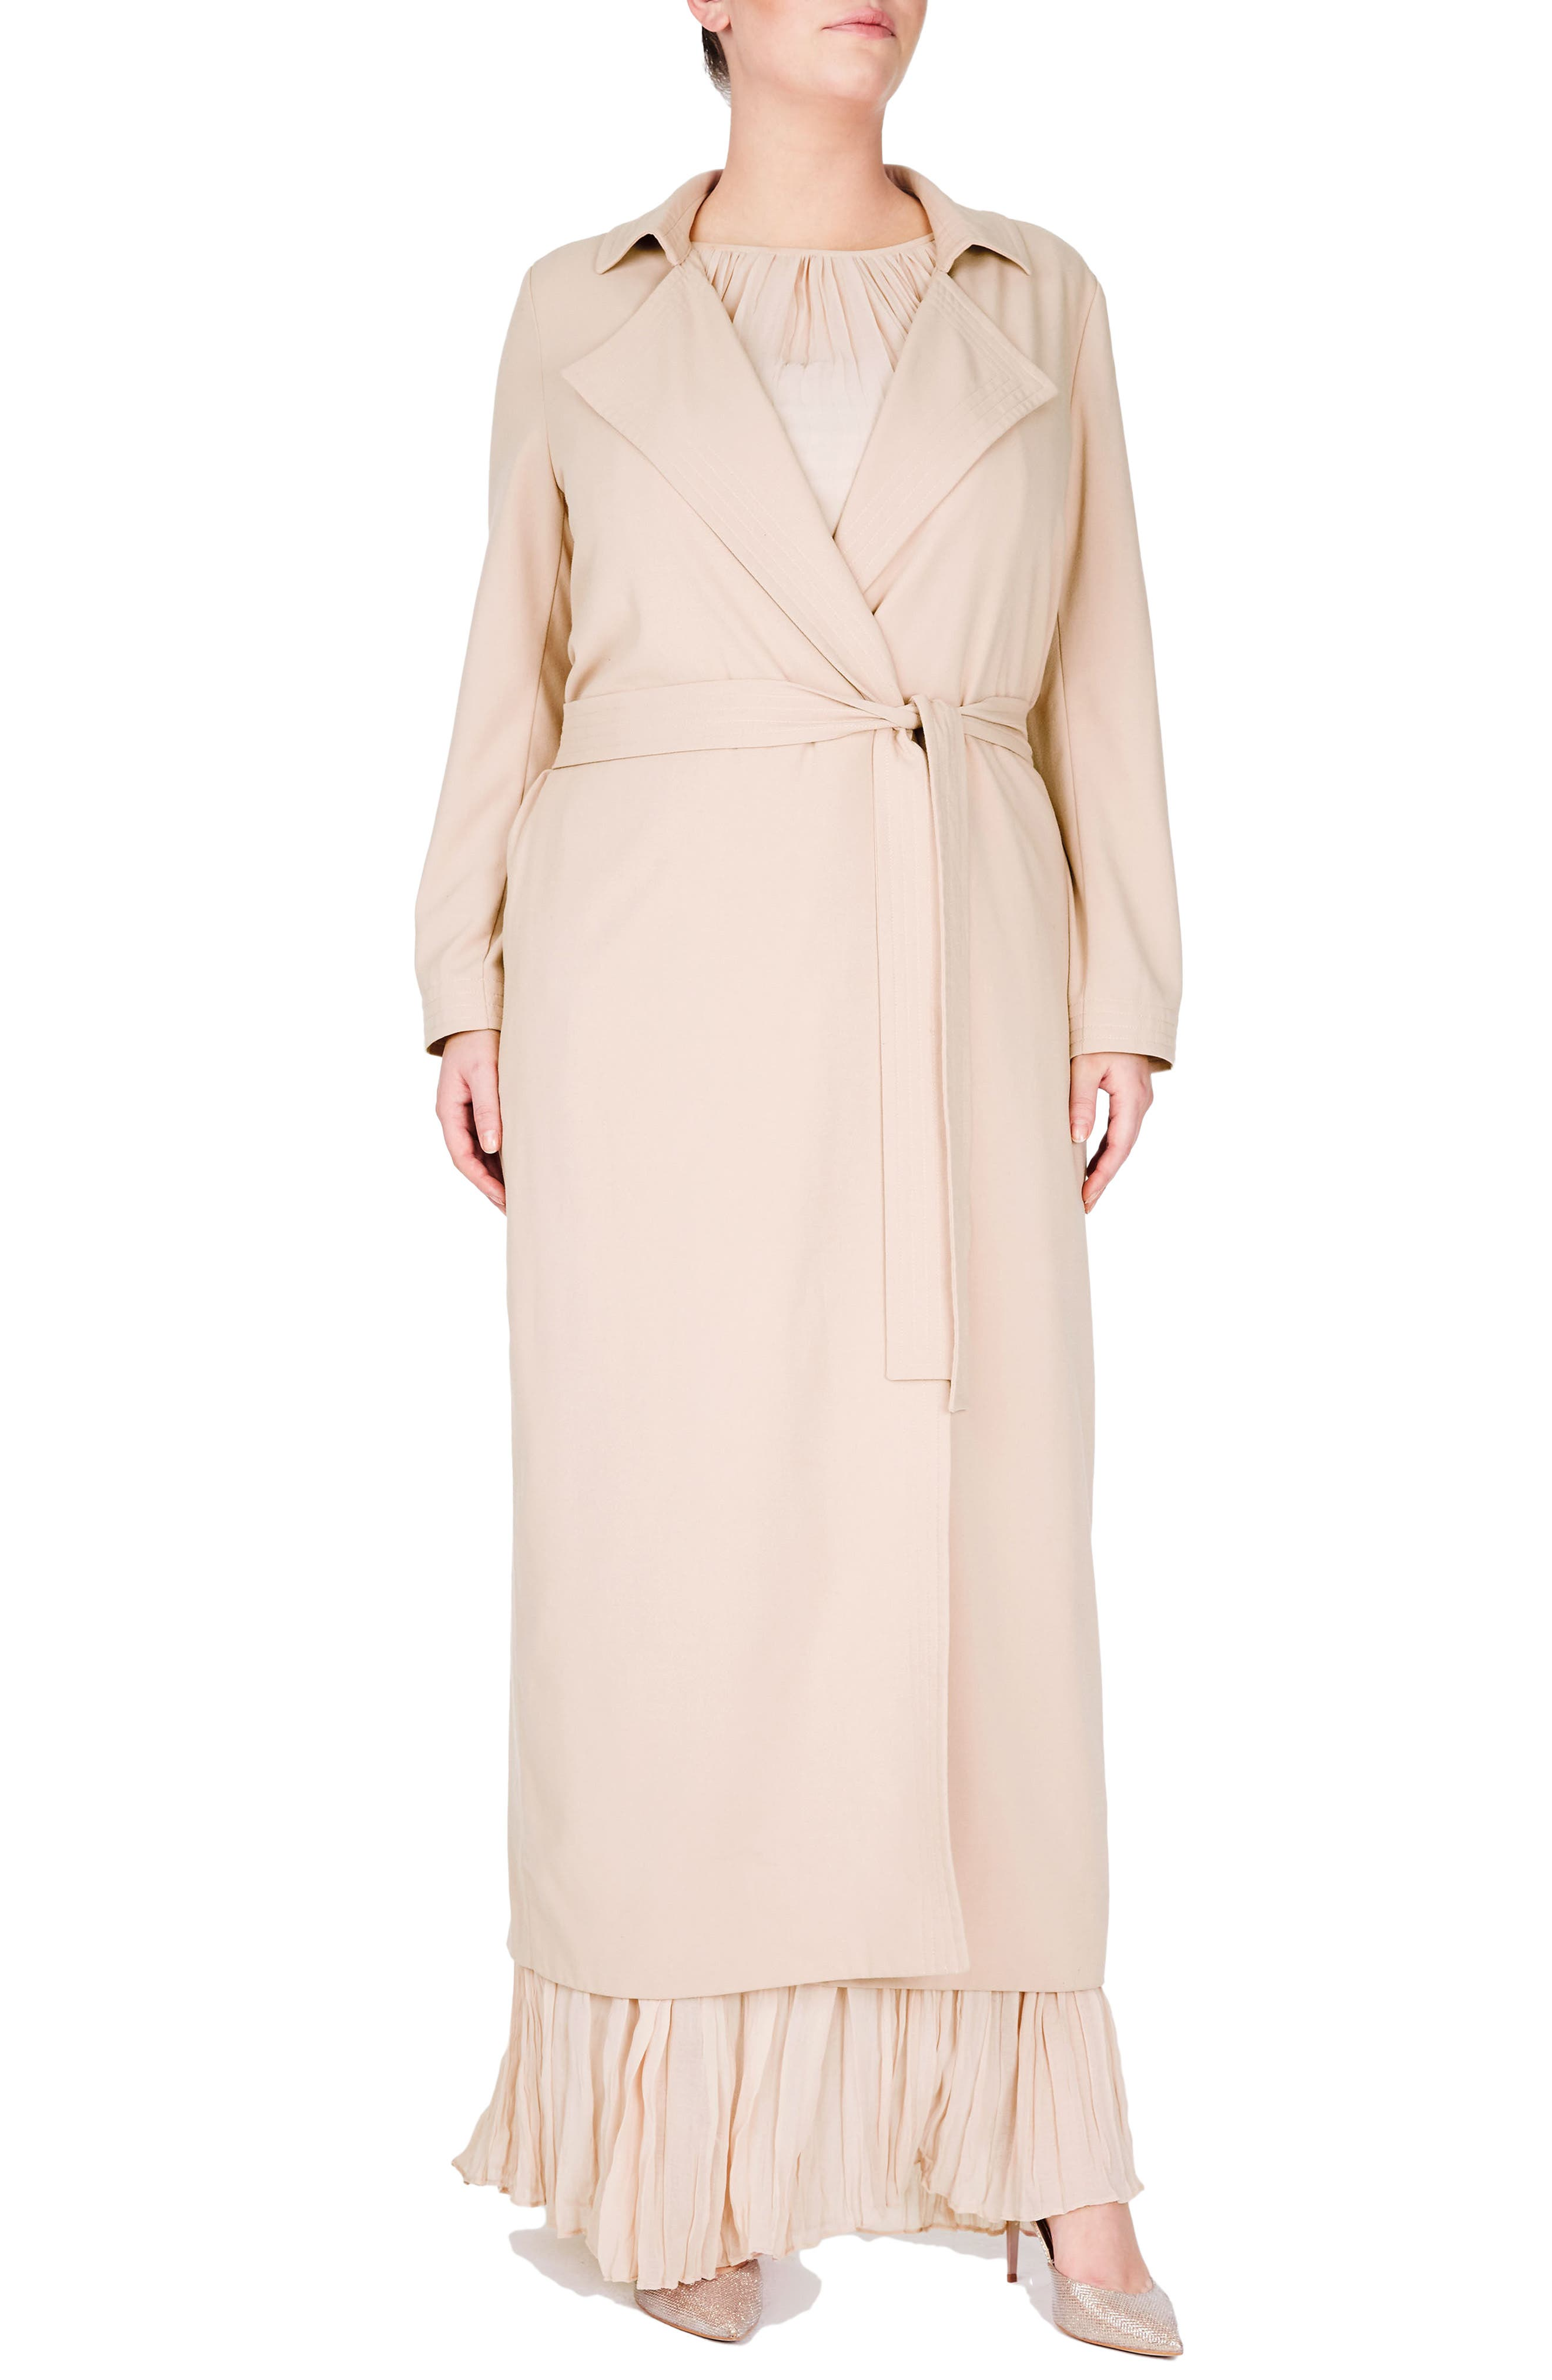 ELVI Long Trench Coat (Plus Size)